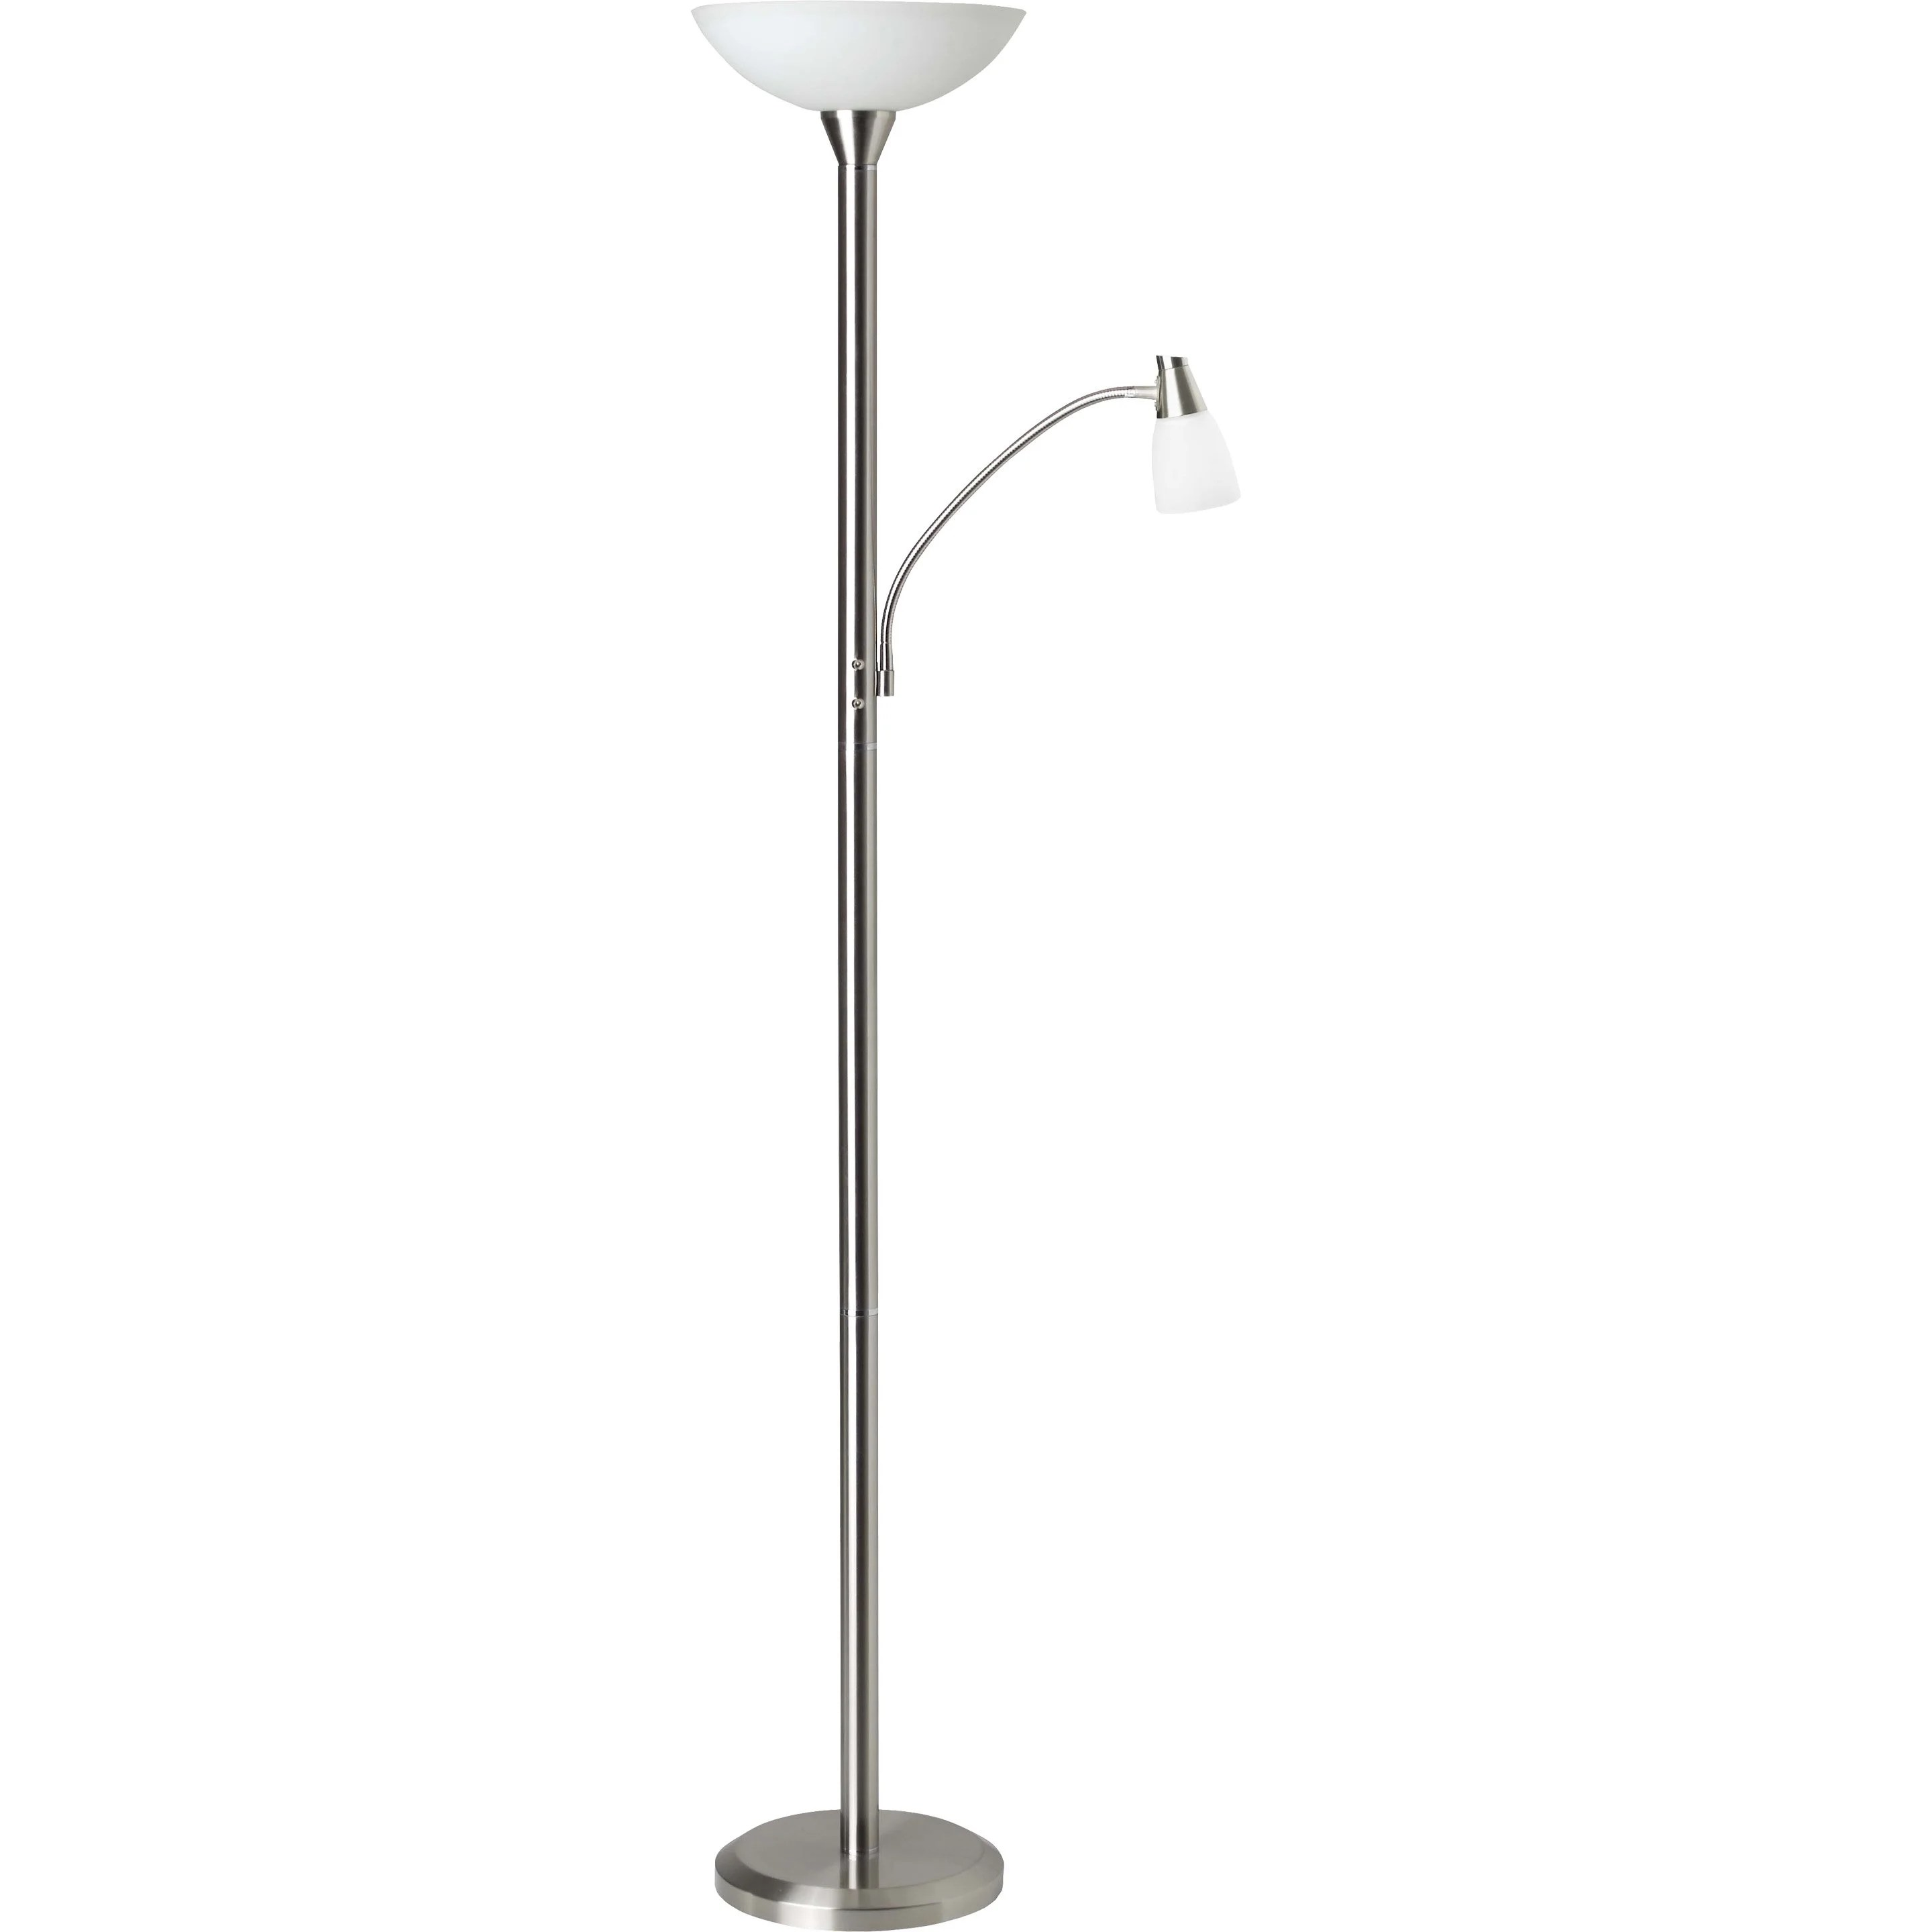 Lampadaire Avec Liseuse Lampadaire Avec Liseuse Led Lucy H 179 Cm 5 5 W